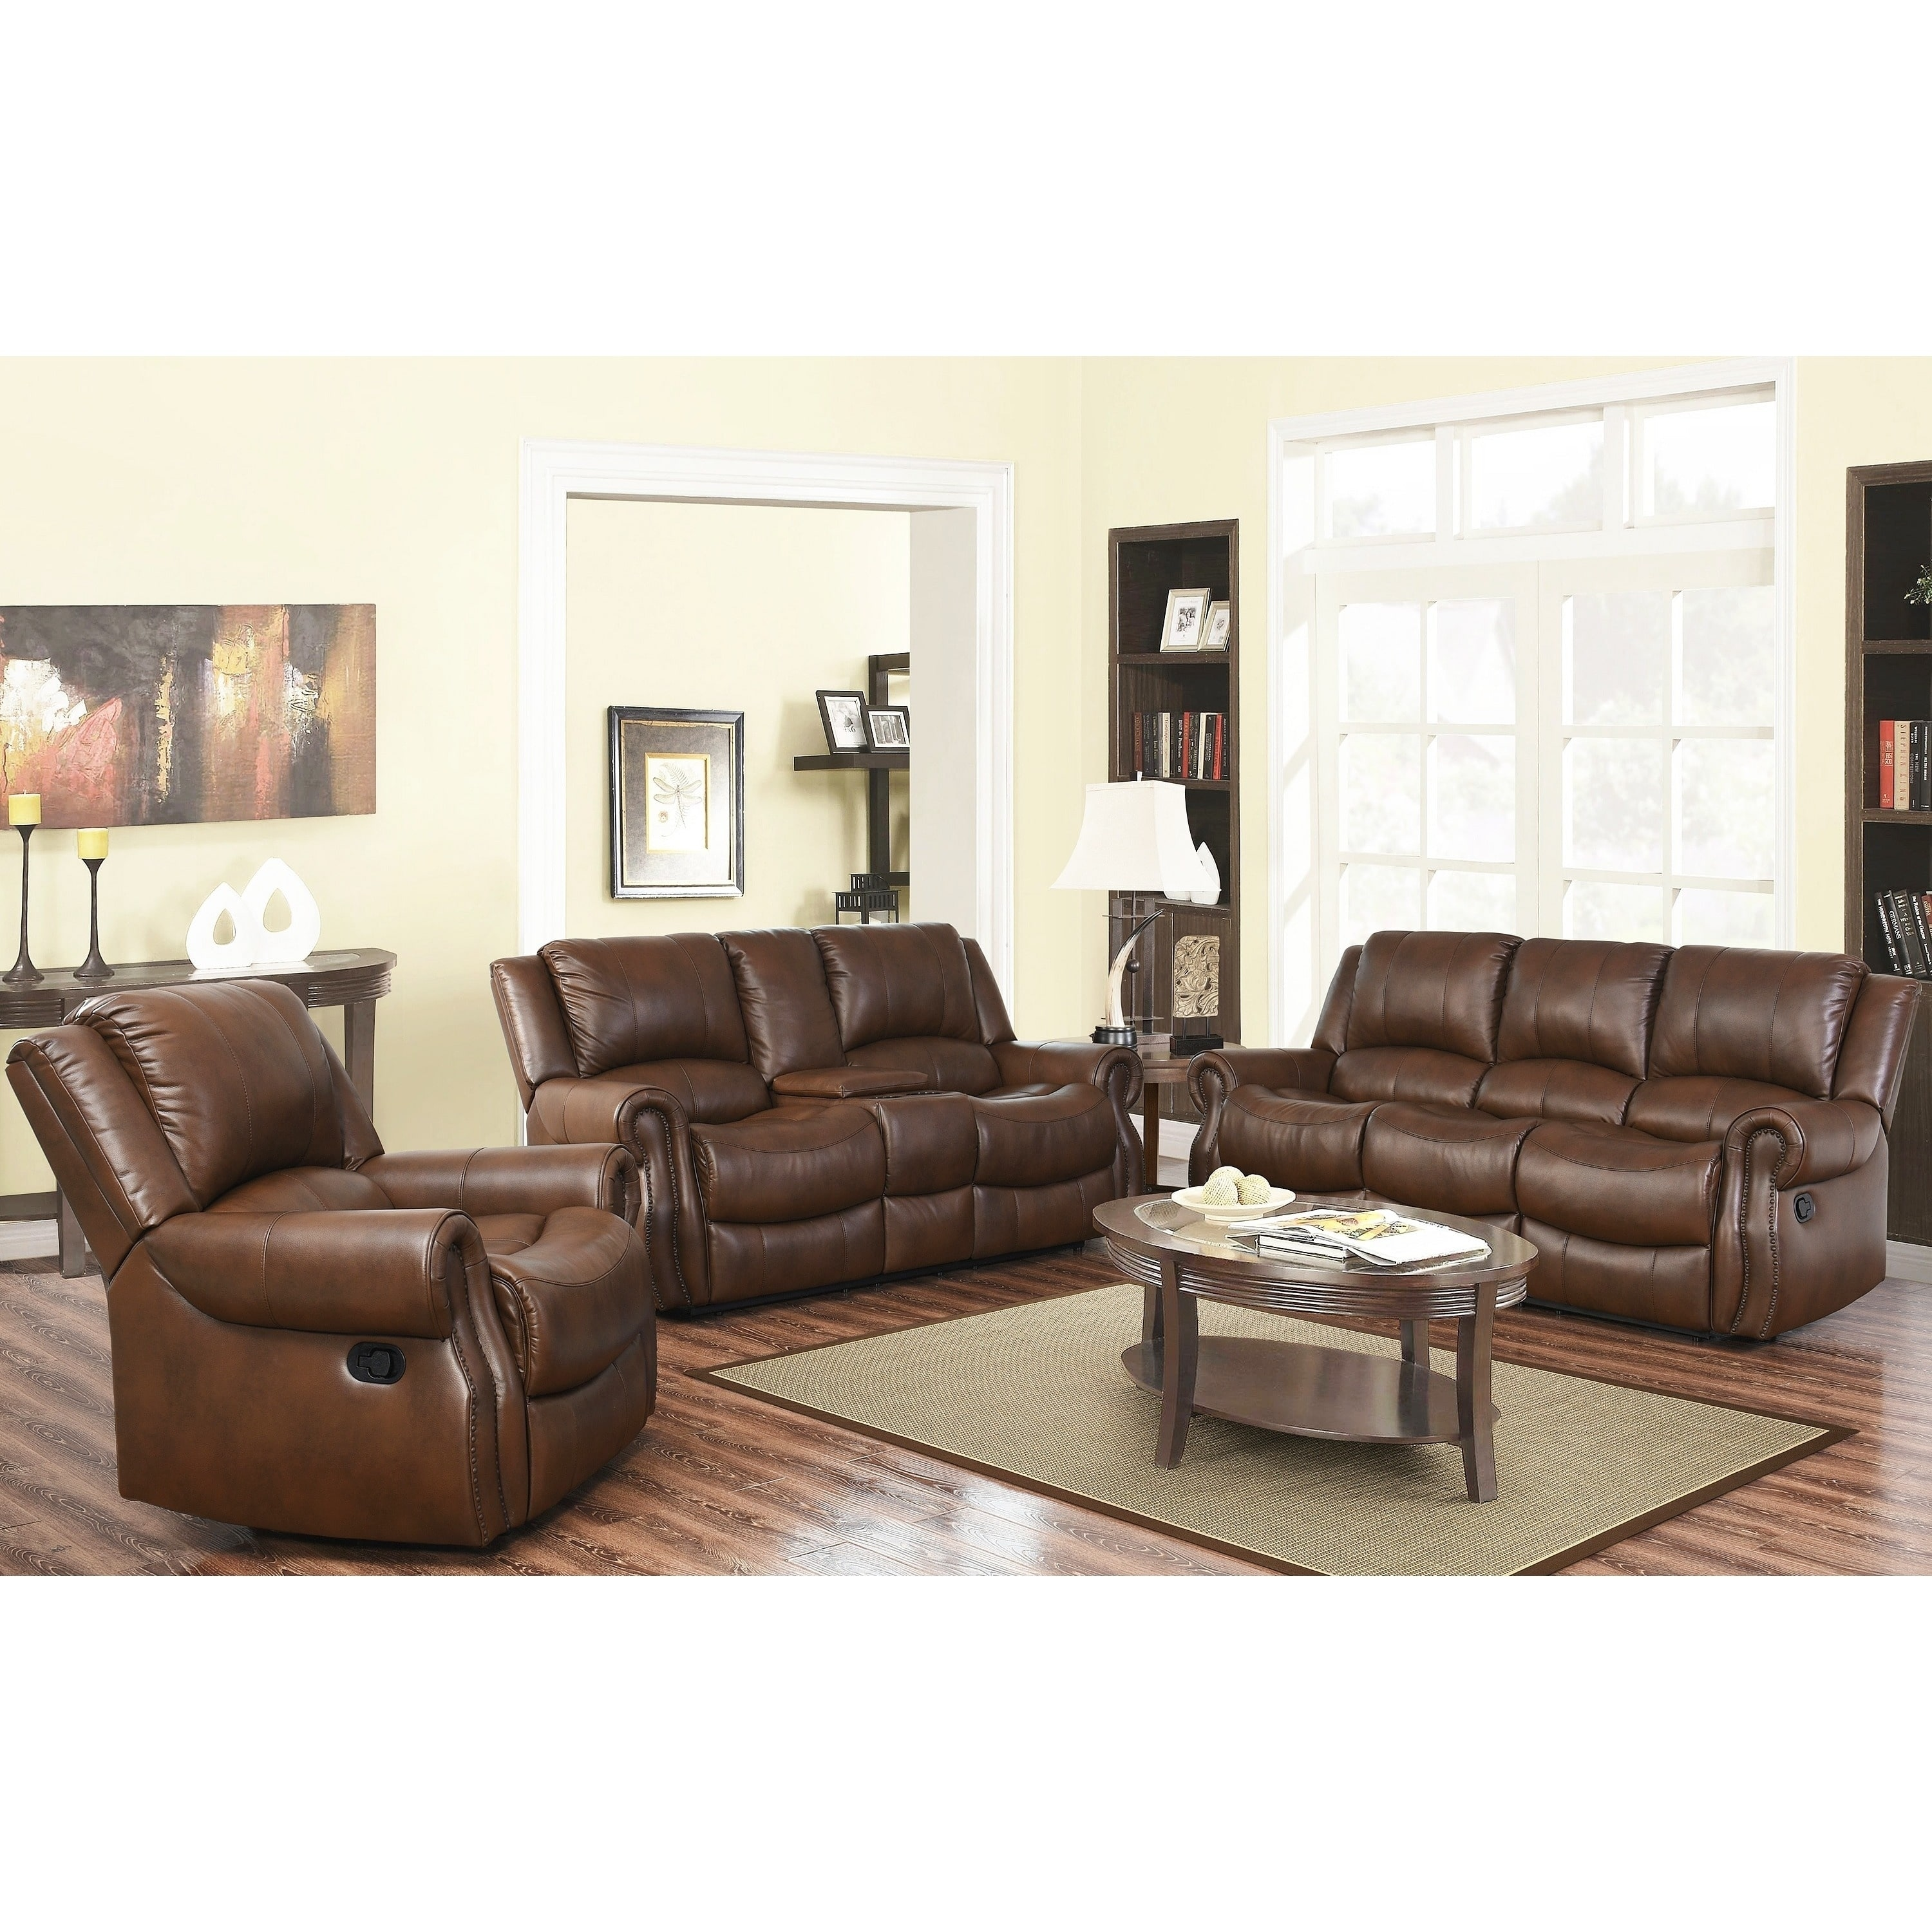 Abbyson Calabasas Mesa Brown 3 Piece Reclining Living Room Set   Free  Shipping Today   Overstock.com   17634868